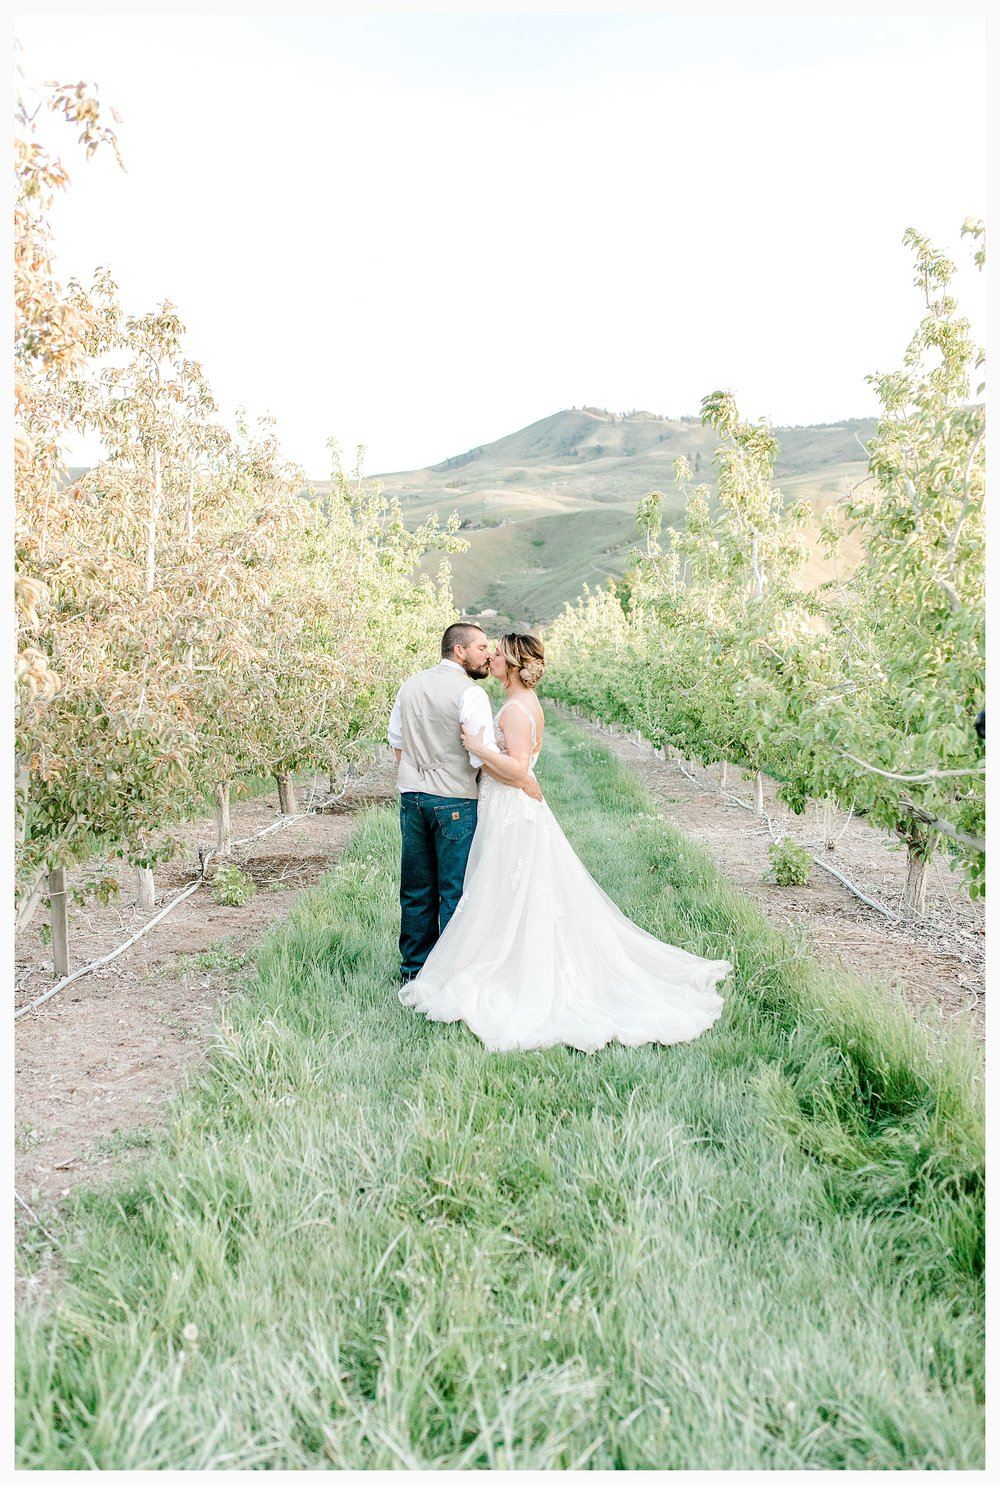 Rustic barn wedding in Wenatchee Washington at Sunshine Ranch on Easy Street, Emma Rose Company Seattle PNW Light and Airy Wedding Photographer_0139.jpg